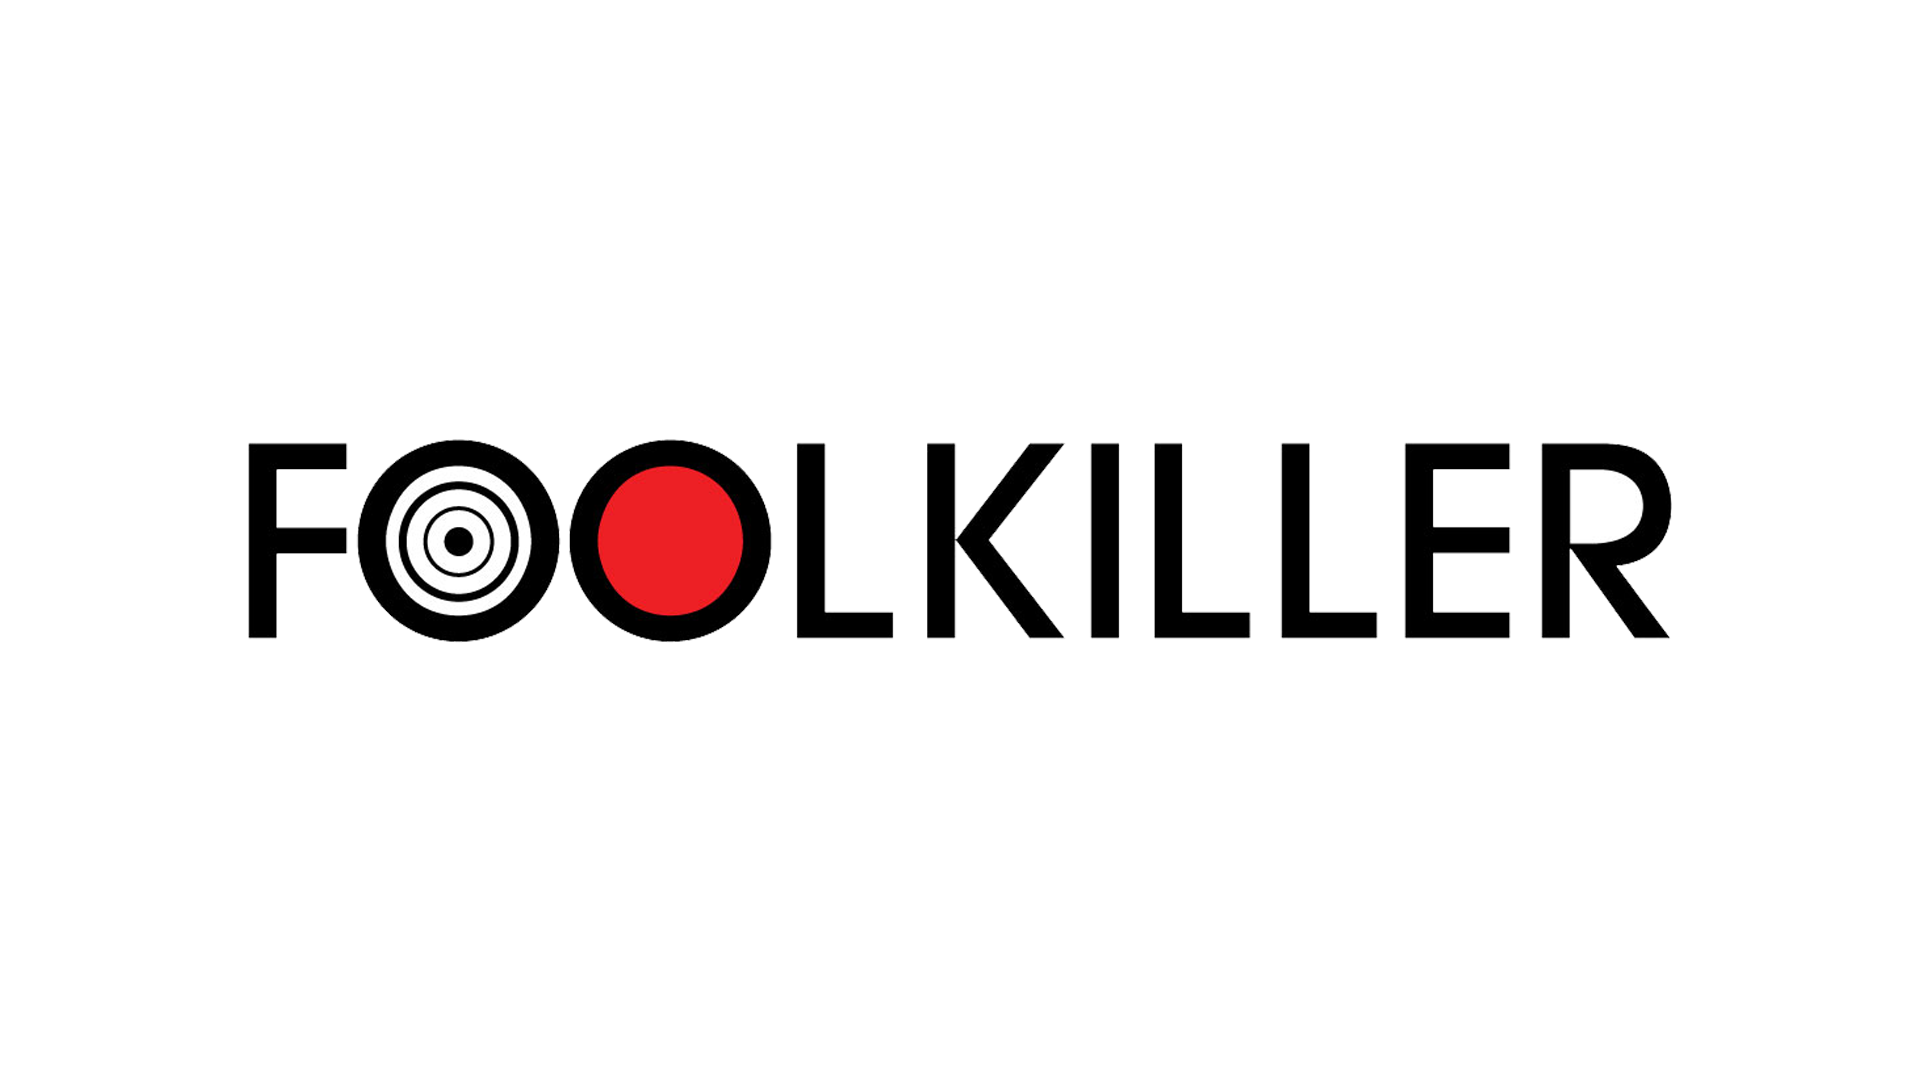 Foolkiller_4.png